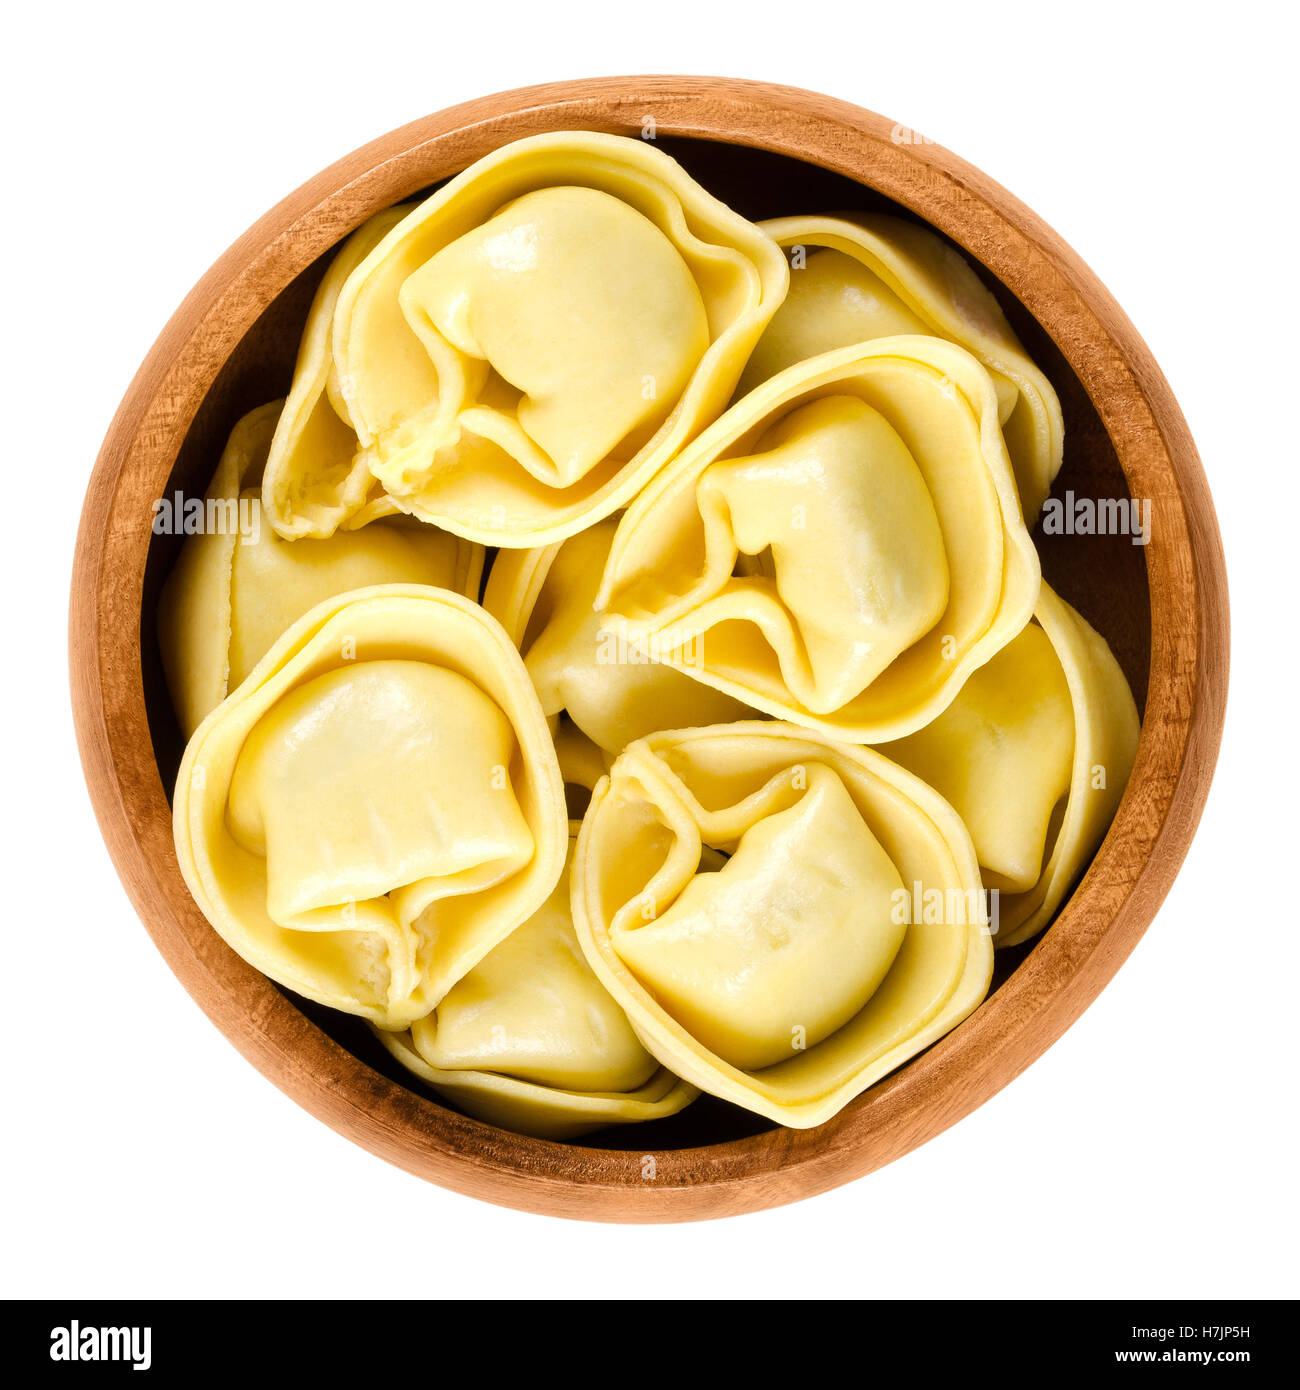 Tortelloni pasta in wooden bowl. Ring-shaped stuffed Italian dumplings with same shape as tortellini, but larger. Stock Photo